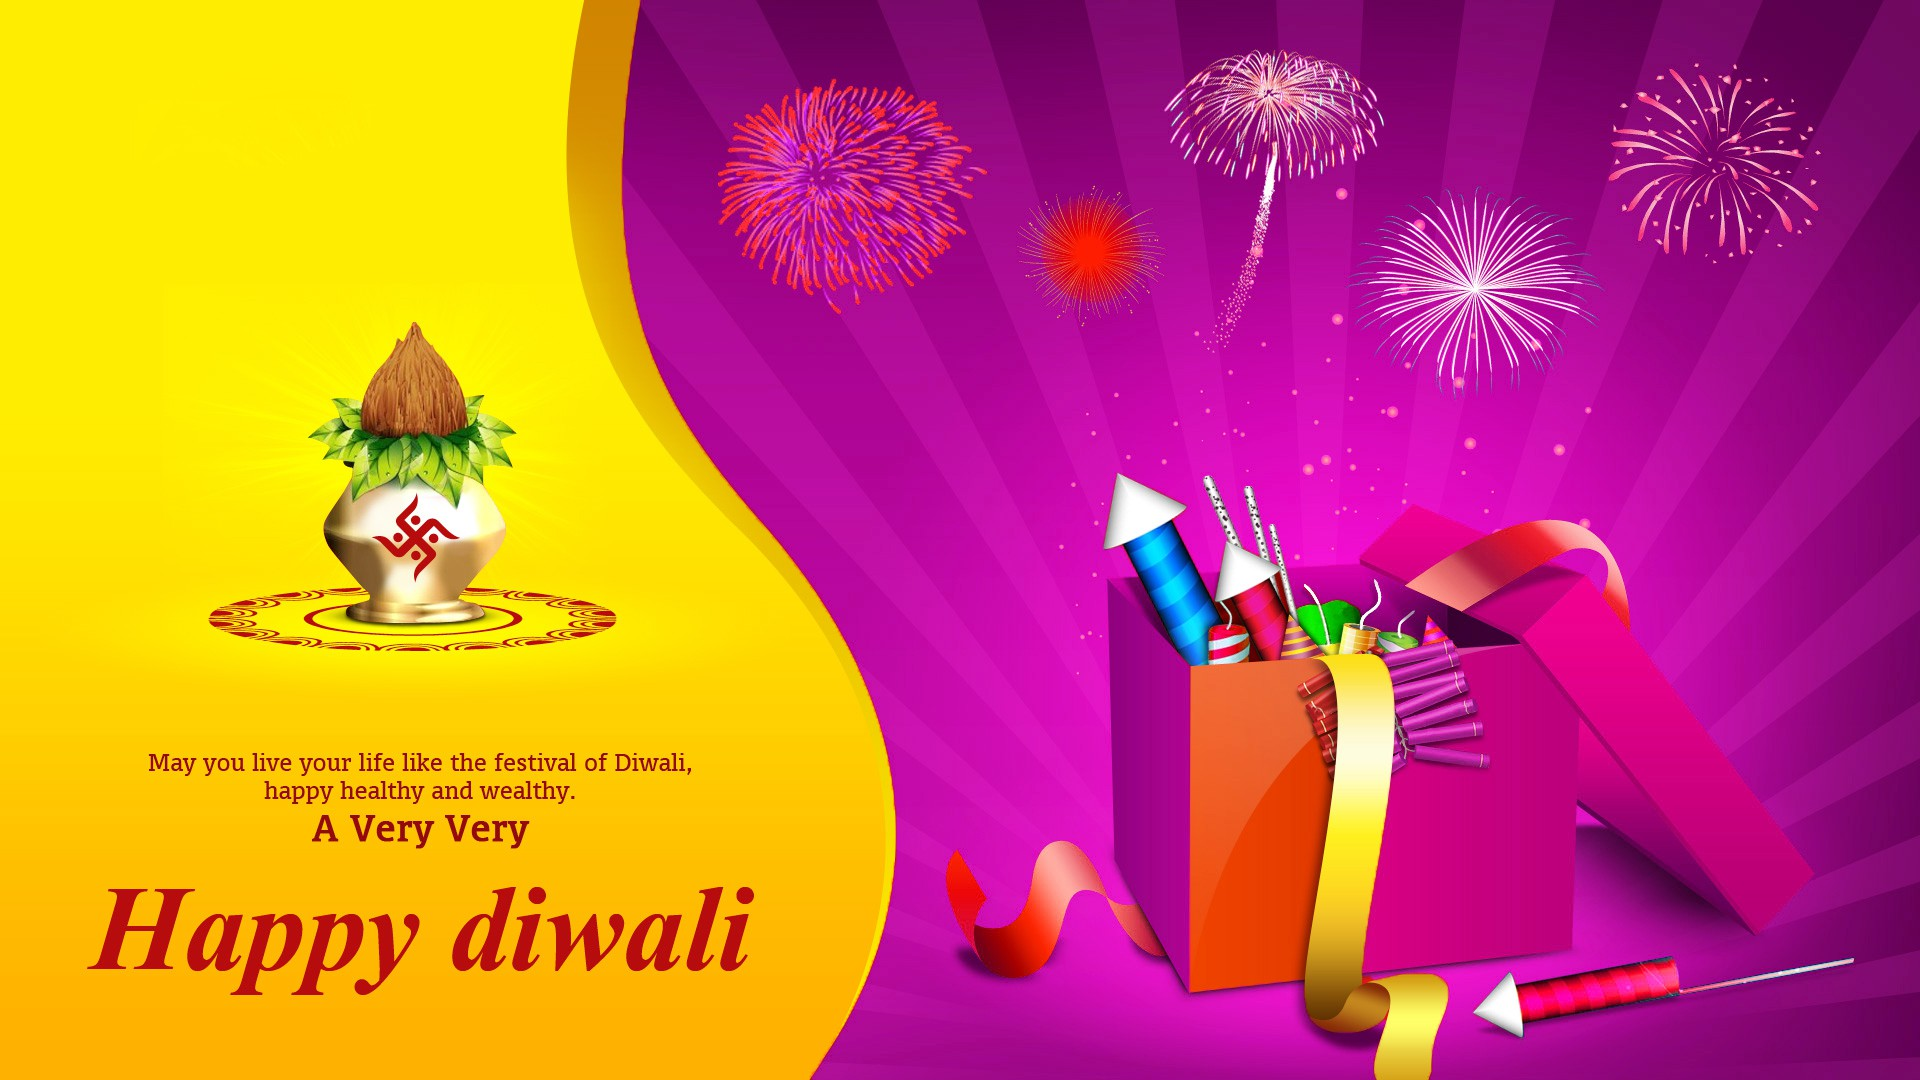 Happy diwali wishes greeting cards download diwali quotes images download diwali quotes images kristyandbryce Choice Image